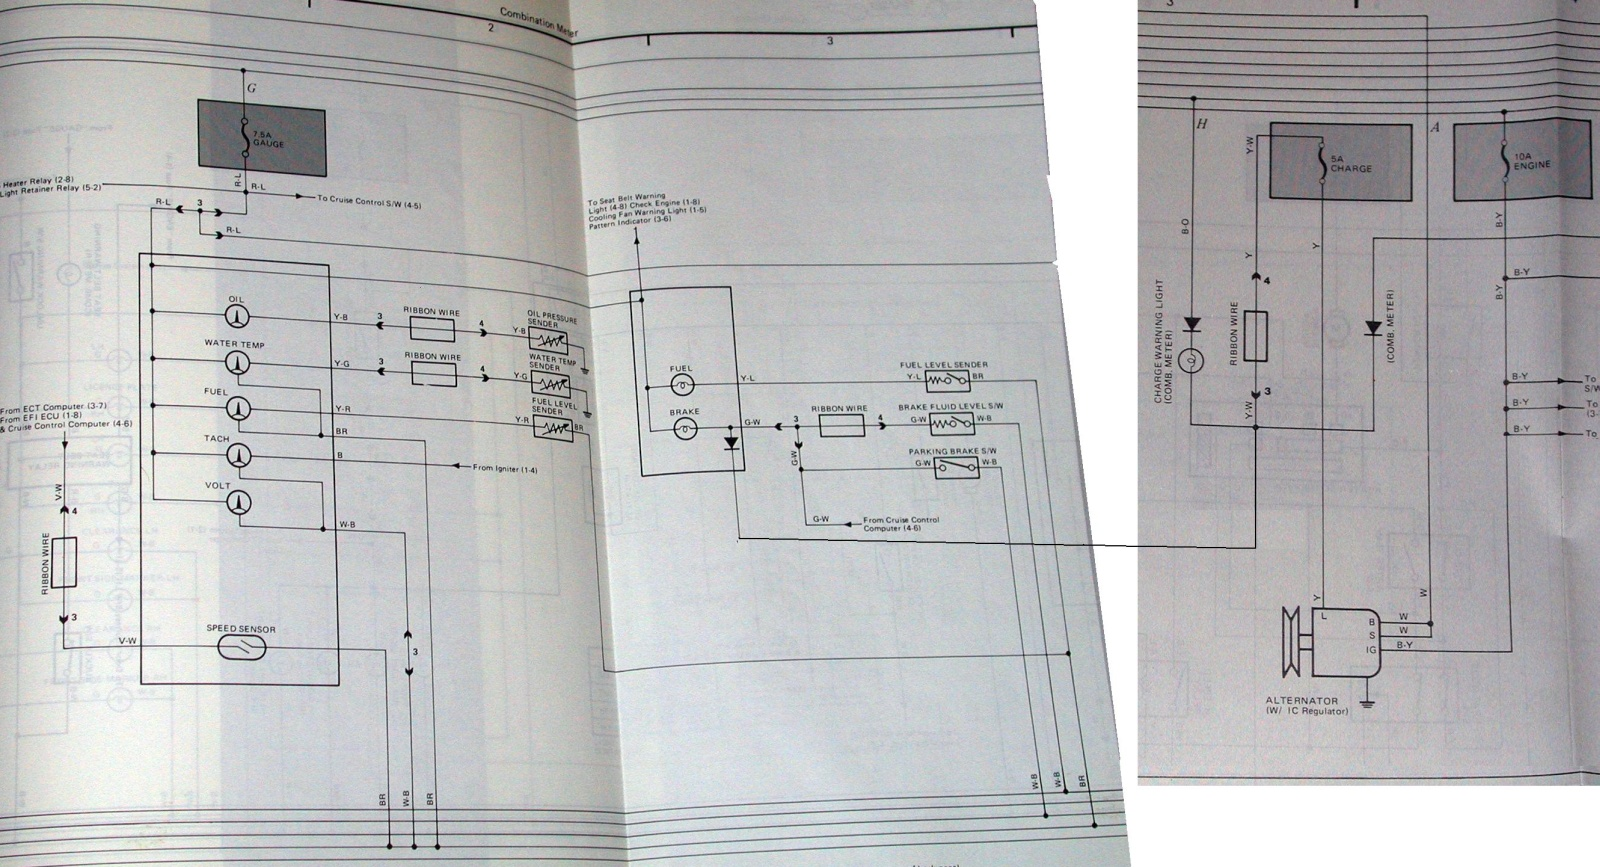 wiring3 legend chevy wiring diagram detail cool machine dolgular com circle track wiring diagram at fashall.co